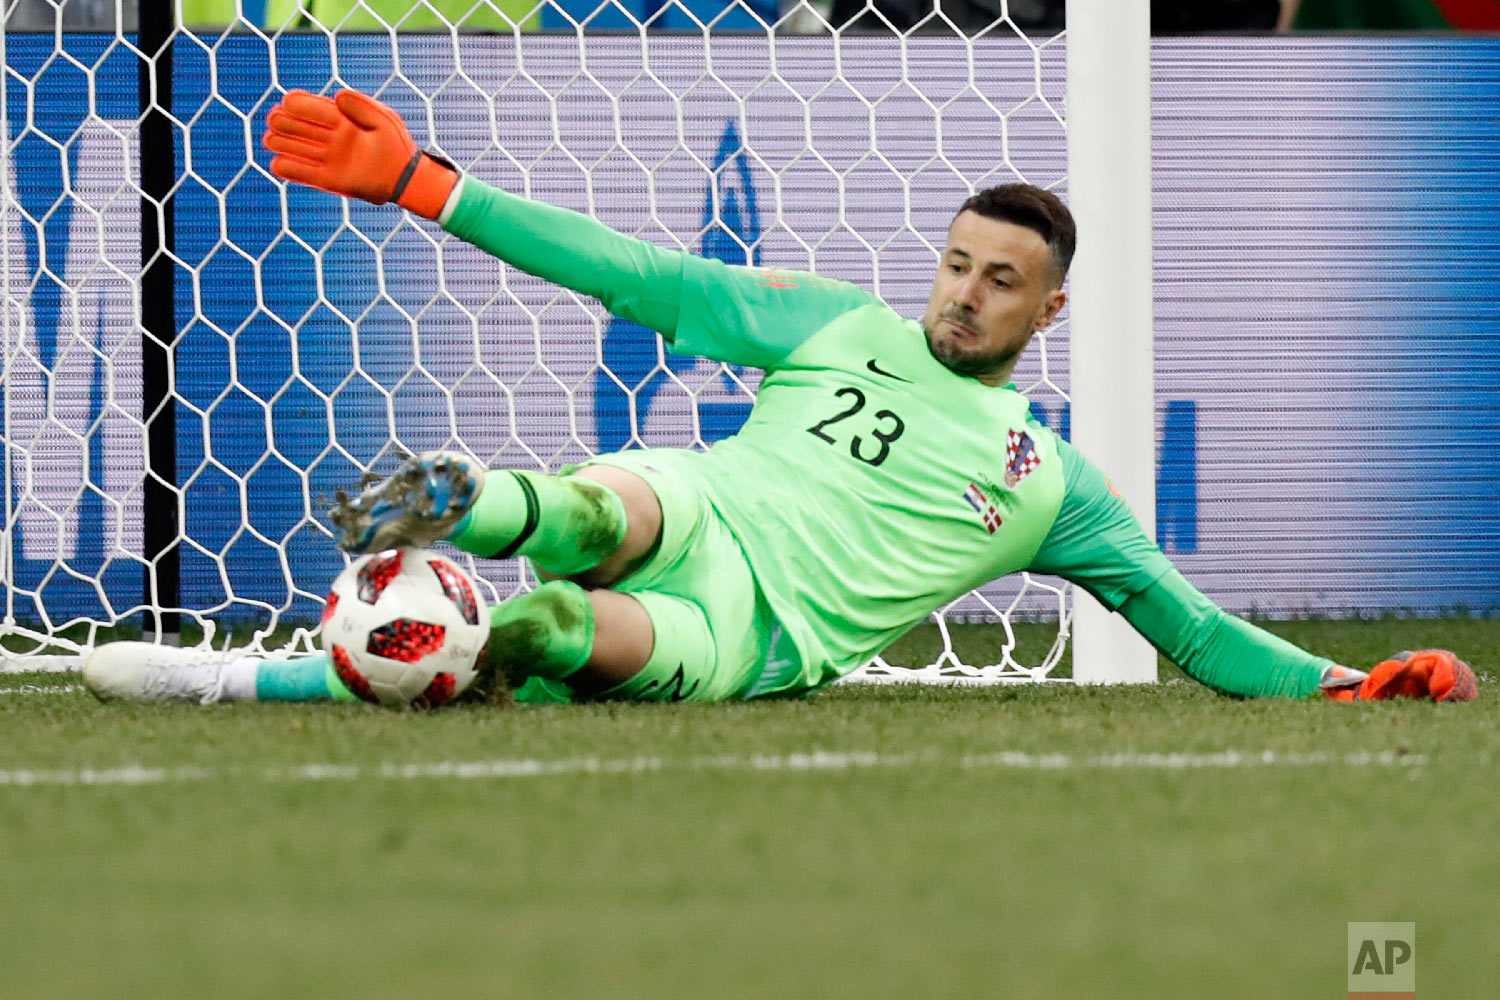 Croatia goalkeeper Danijel Subasic saves the decisive penalty during a penalty shoot out after extra time during the round of 16 match between Croatia and Denmark at the 2018 soccer World Cup in the Nizhny Novgorod Stadium, in Nizhny Novgorod , Russia, Sunday, July 1, 2018. (AP Photo/Efrem Lukatsky)